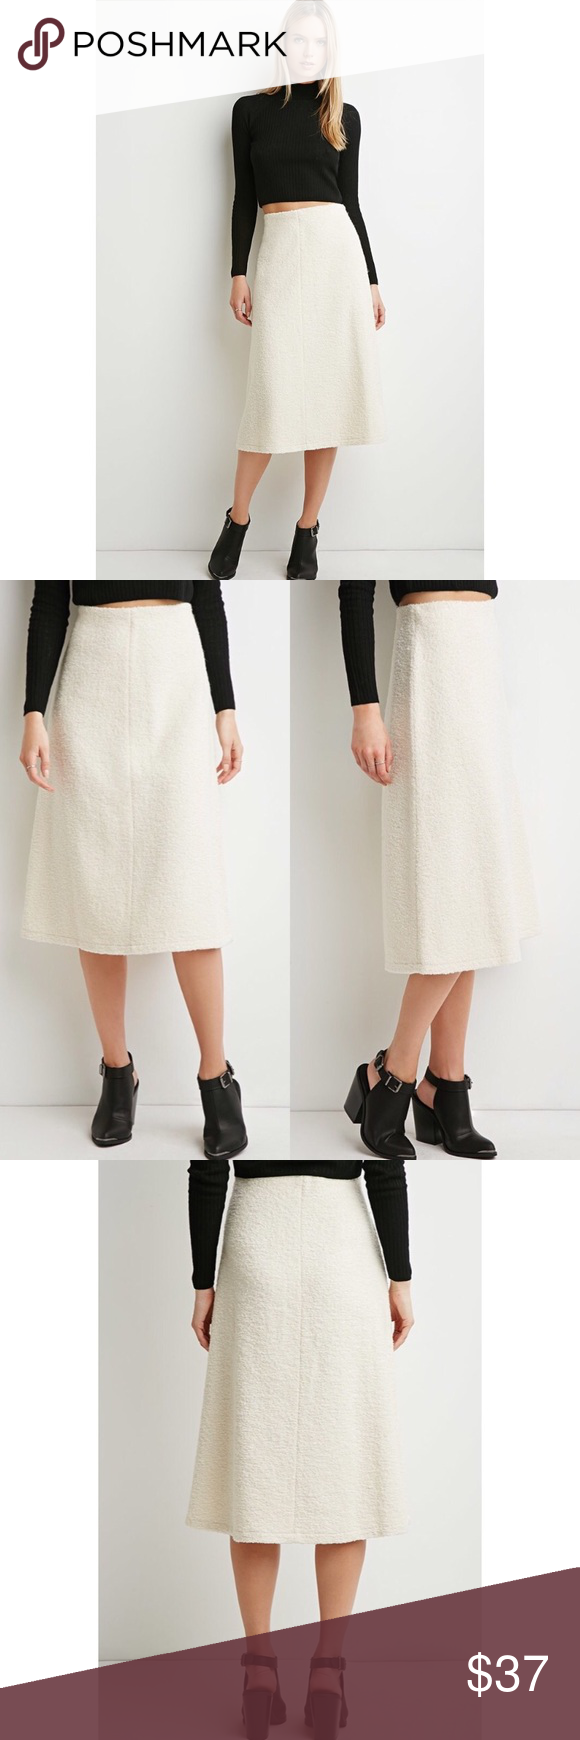 ❄️ A-line Midi Skirt A-line midi skirt featuring a side zipper. Unlined. 63% polyester, 12% acrylic, 9% wool, 8% cotton, 8% rayon. Made in China. Color: Cream. Sizes small and medium. One of each available. From the Contemporary line. NWT. Forever 21 Skirts Midi